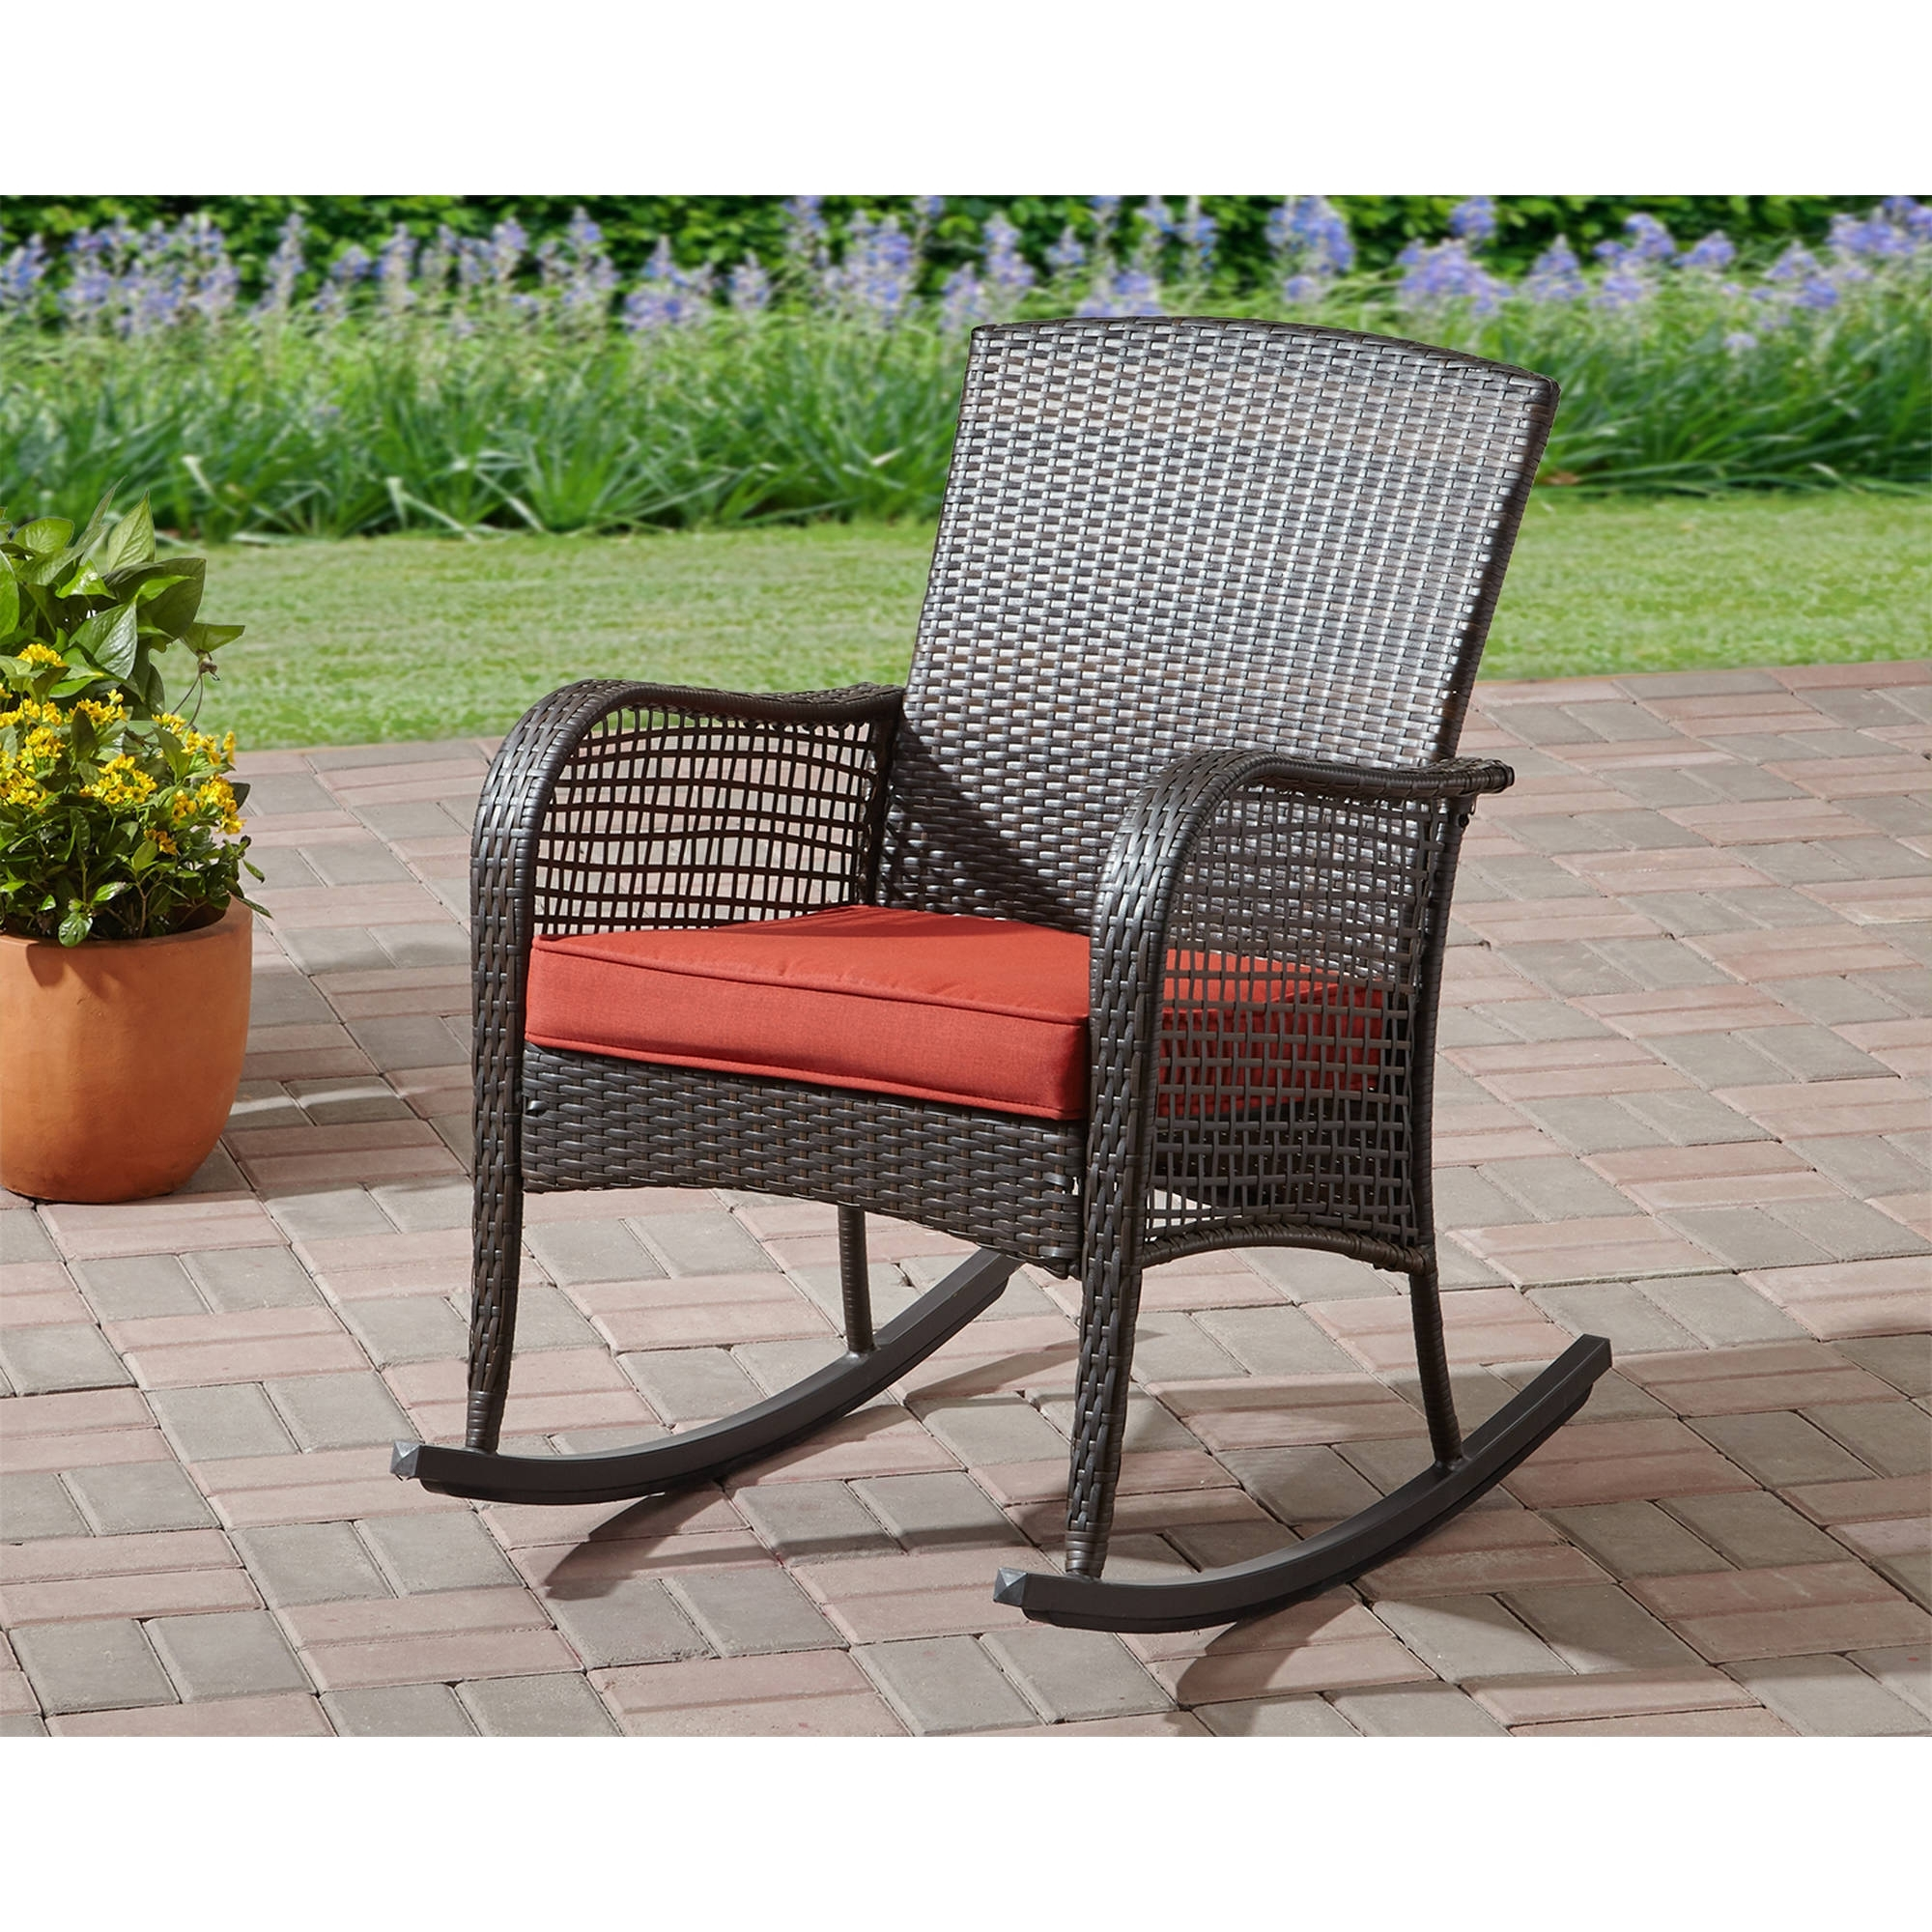 Preferred All Weather Patio Rocking Chairs In Livingroom : All Weather Wicker Patio Swivel Rocking Chair Outdoor (View 11 of 15)